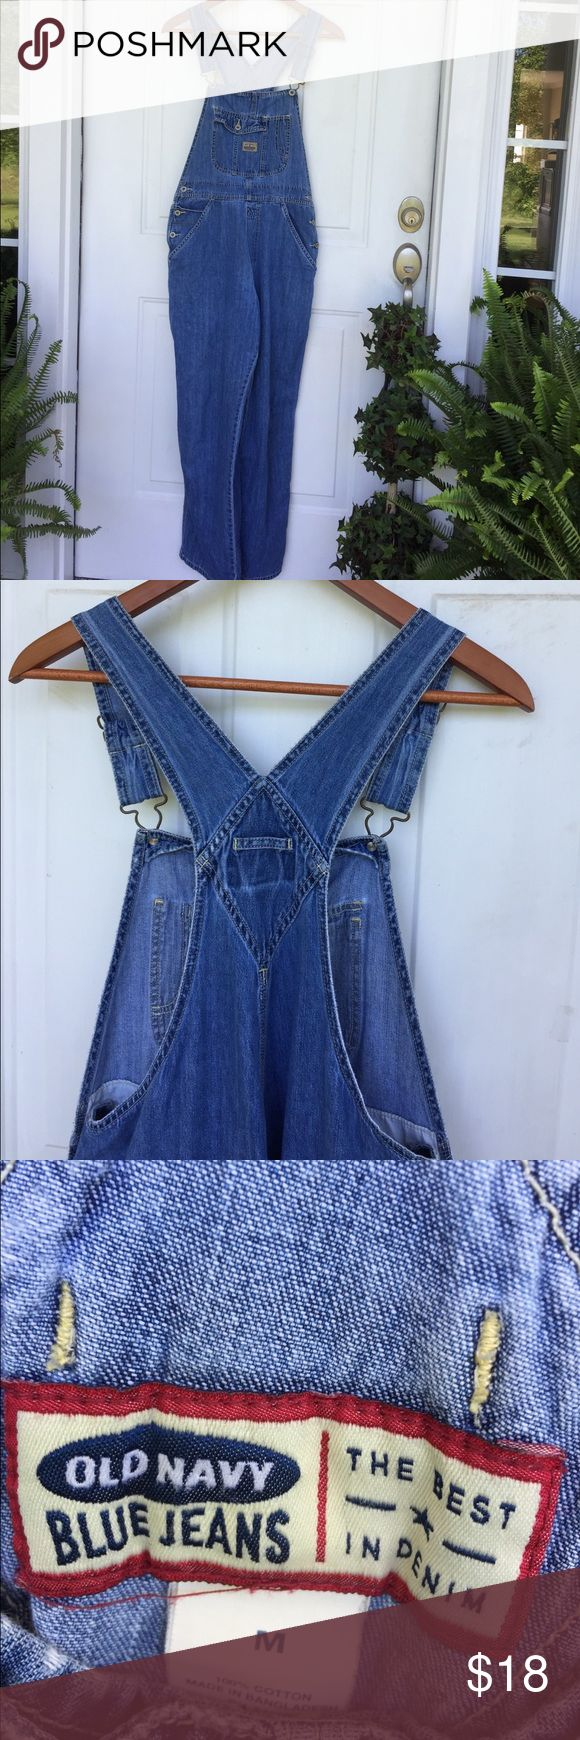 "Old Navy Overalls Vintage Old Navy denim straight leg overalls. Gently faded and soft. Adjustable straps, utility loop and plenty of pockets complete the look. No stains or holes. No missing buttons or hardware. Size medium, measuring 16"" across waist and 26"" inseam (can adjust straps to change length) Old Navy Jeans Overalls"